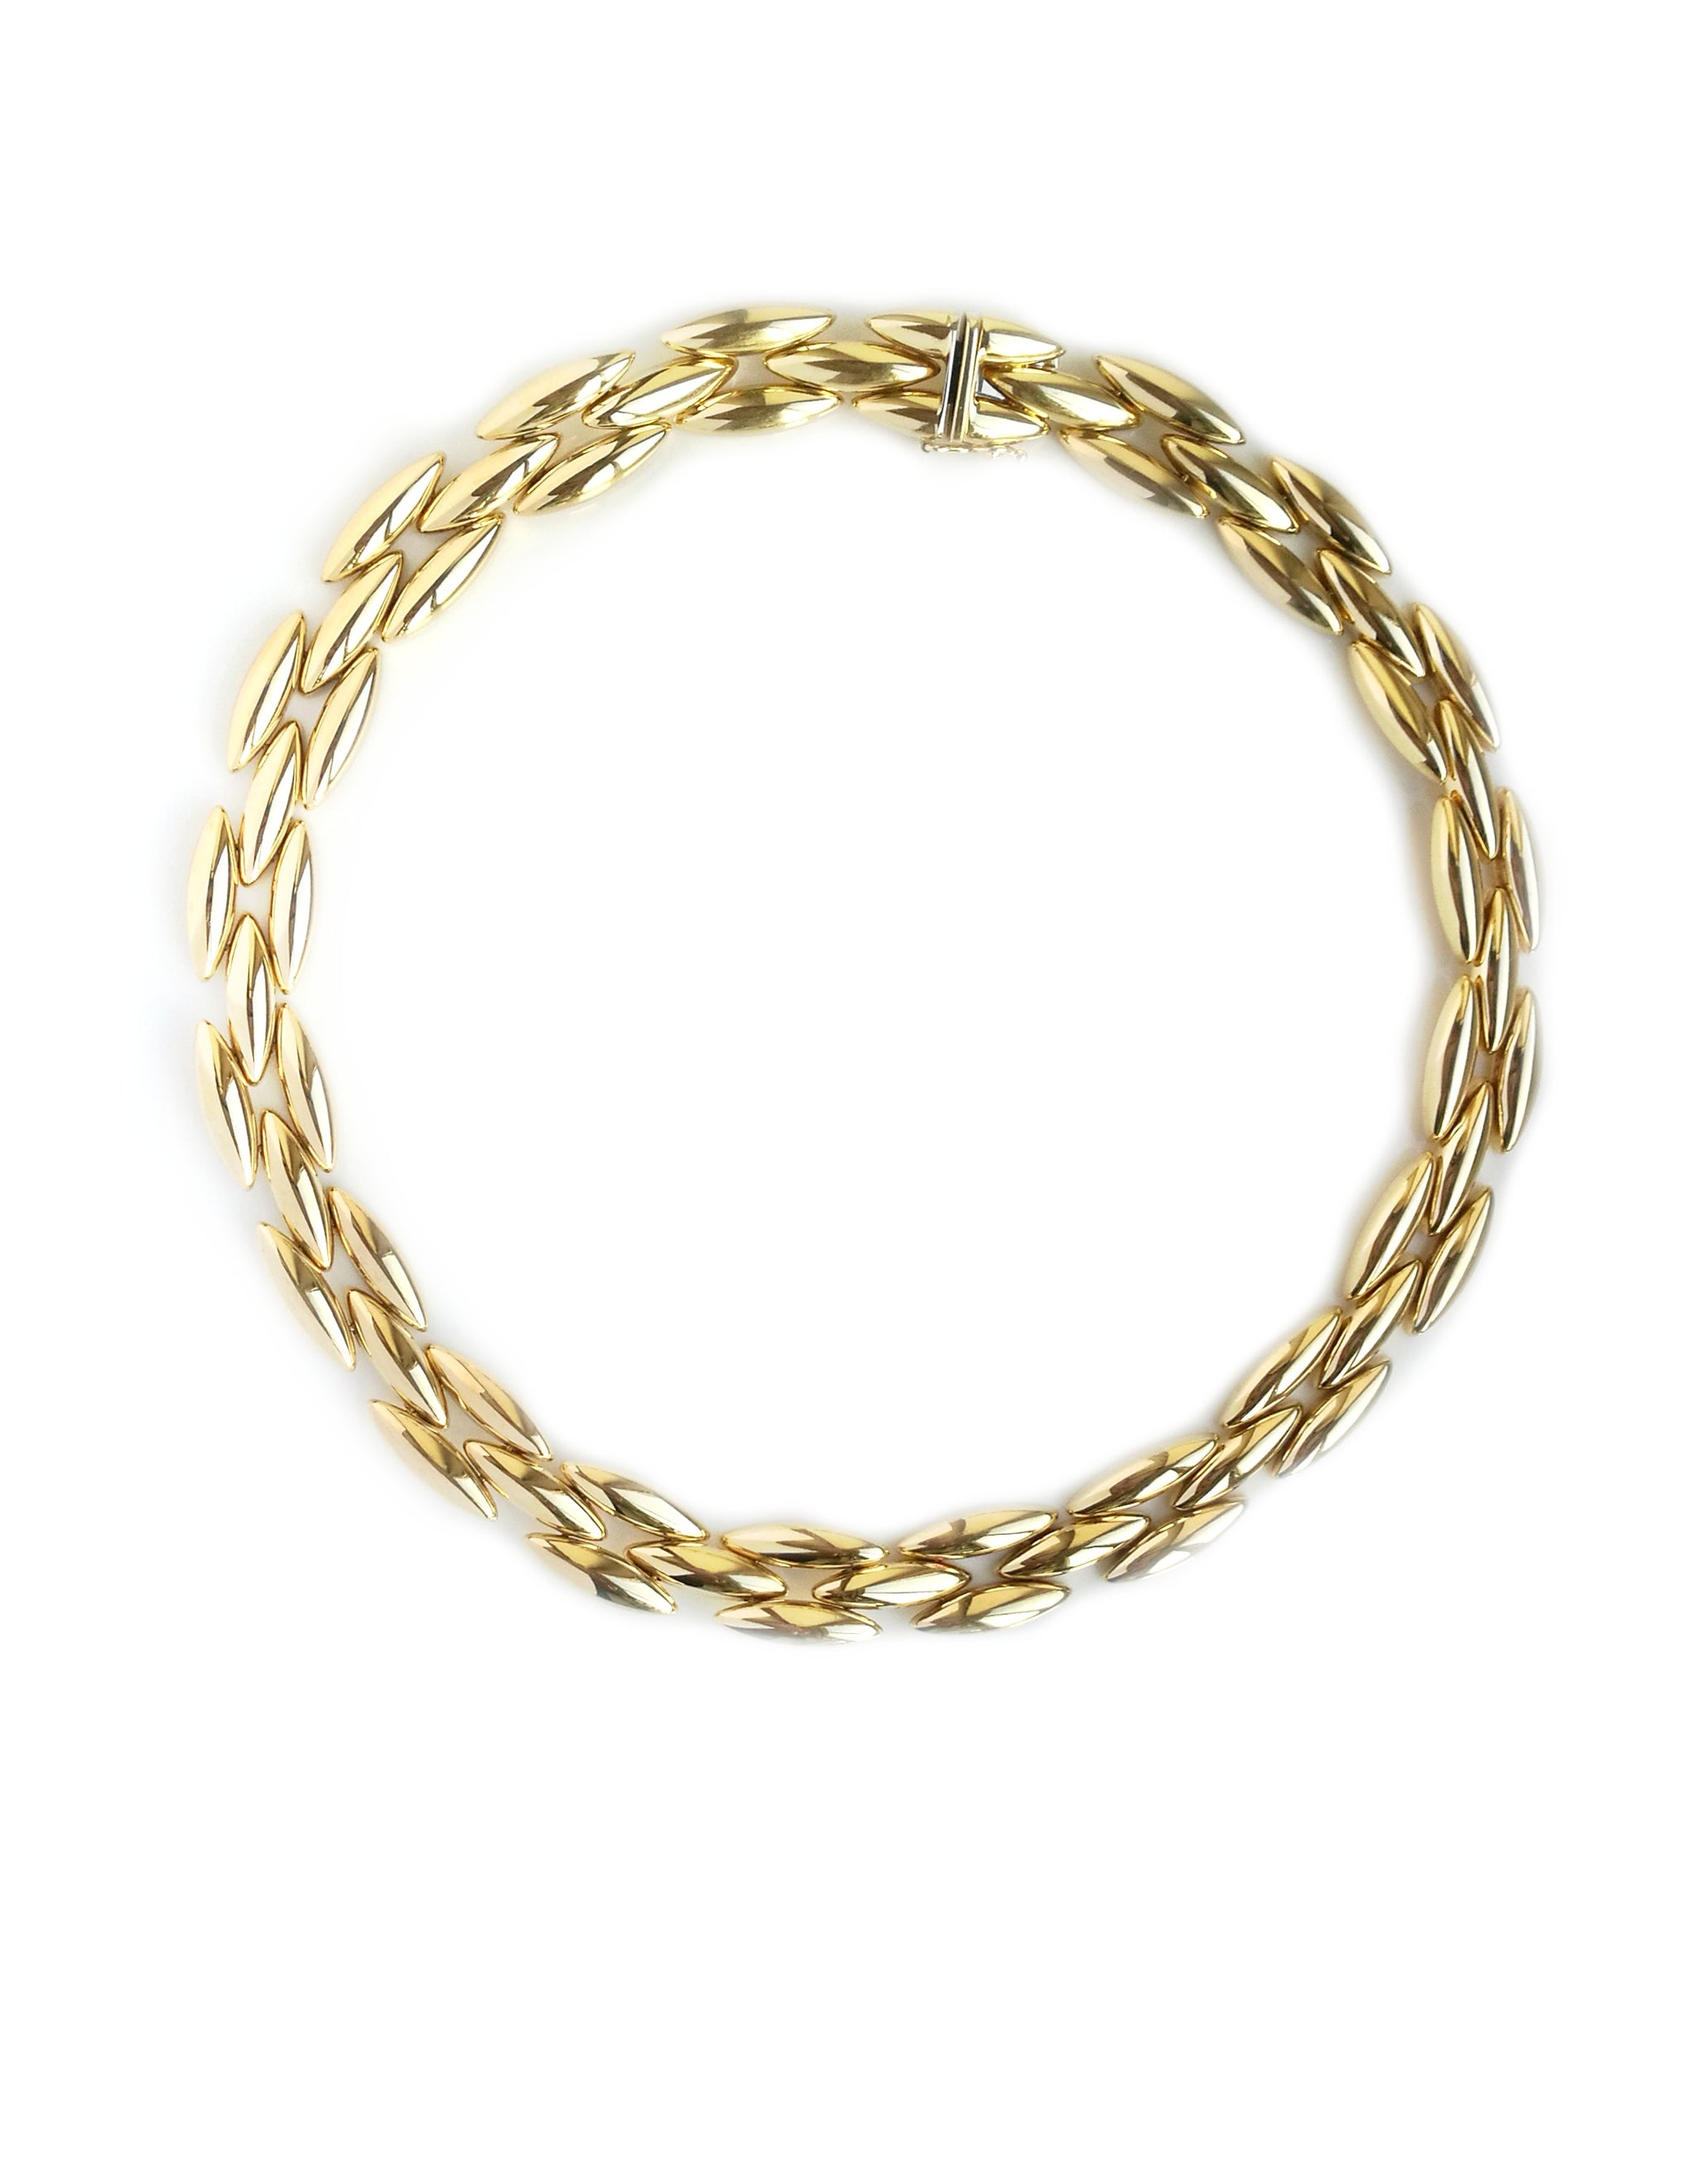 Vintage 1990s Cartier Gentiane Necklace in 18k Yellow Gold, 15½ inch / 40 cm